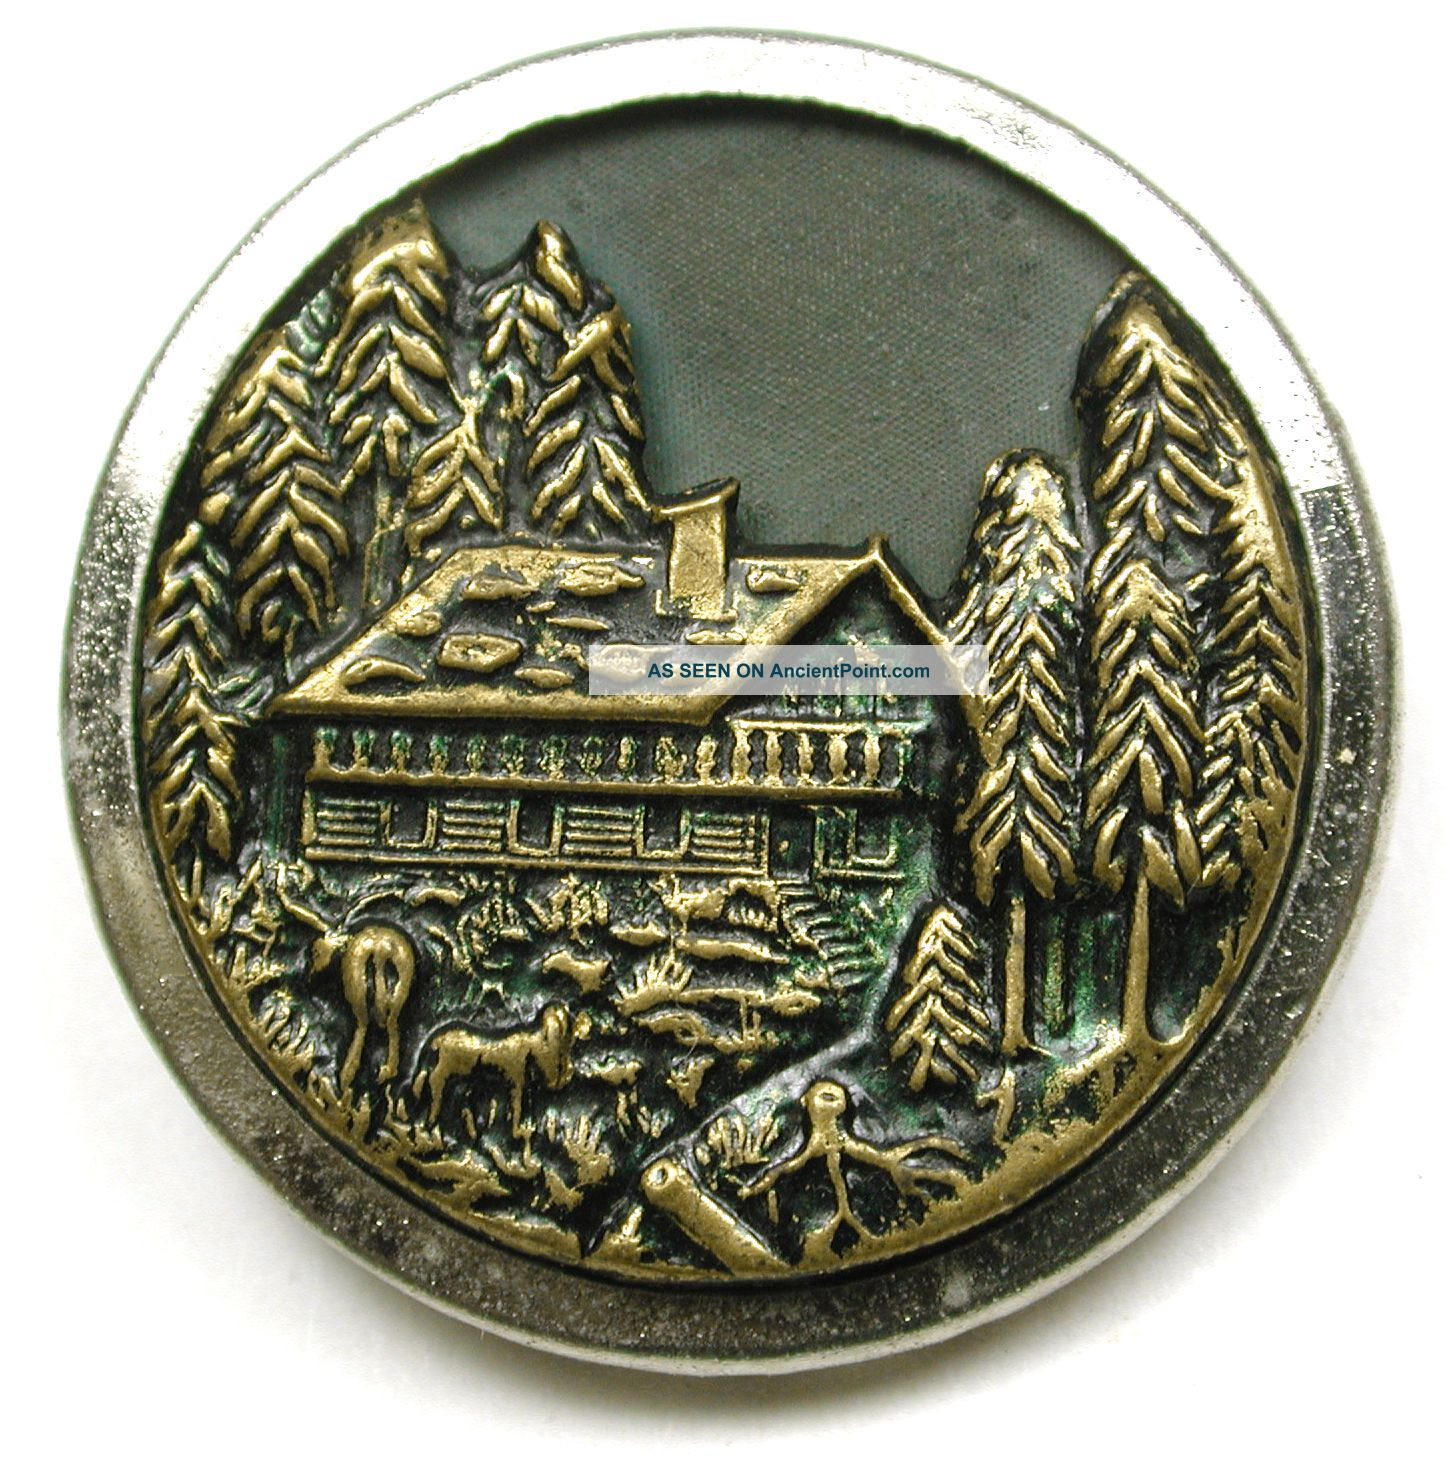 Antique Brass Button Detailed Cabin & Deer Scene - 1 & 3/16